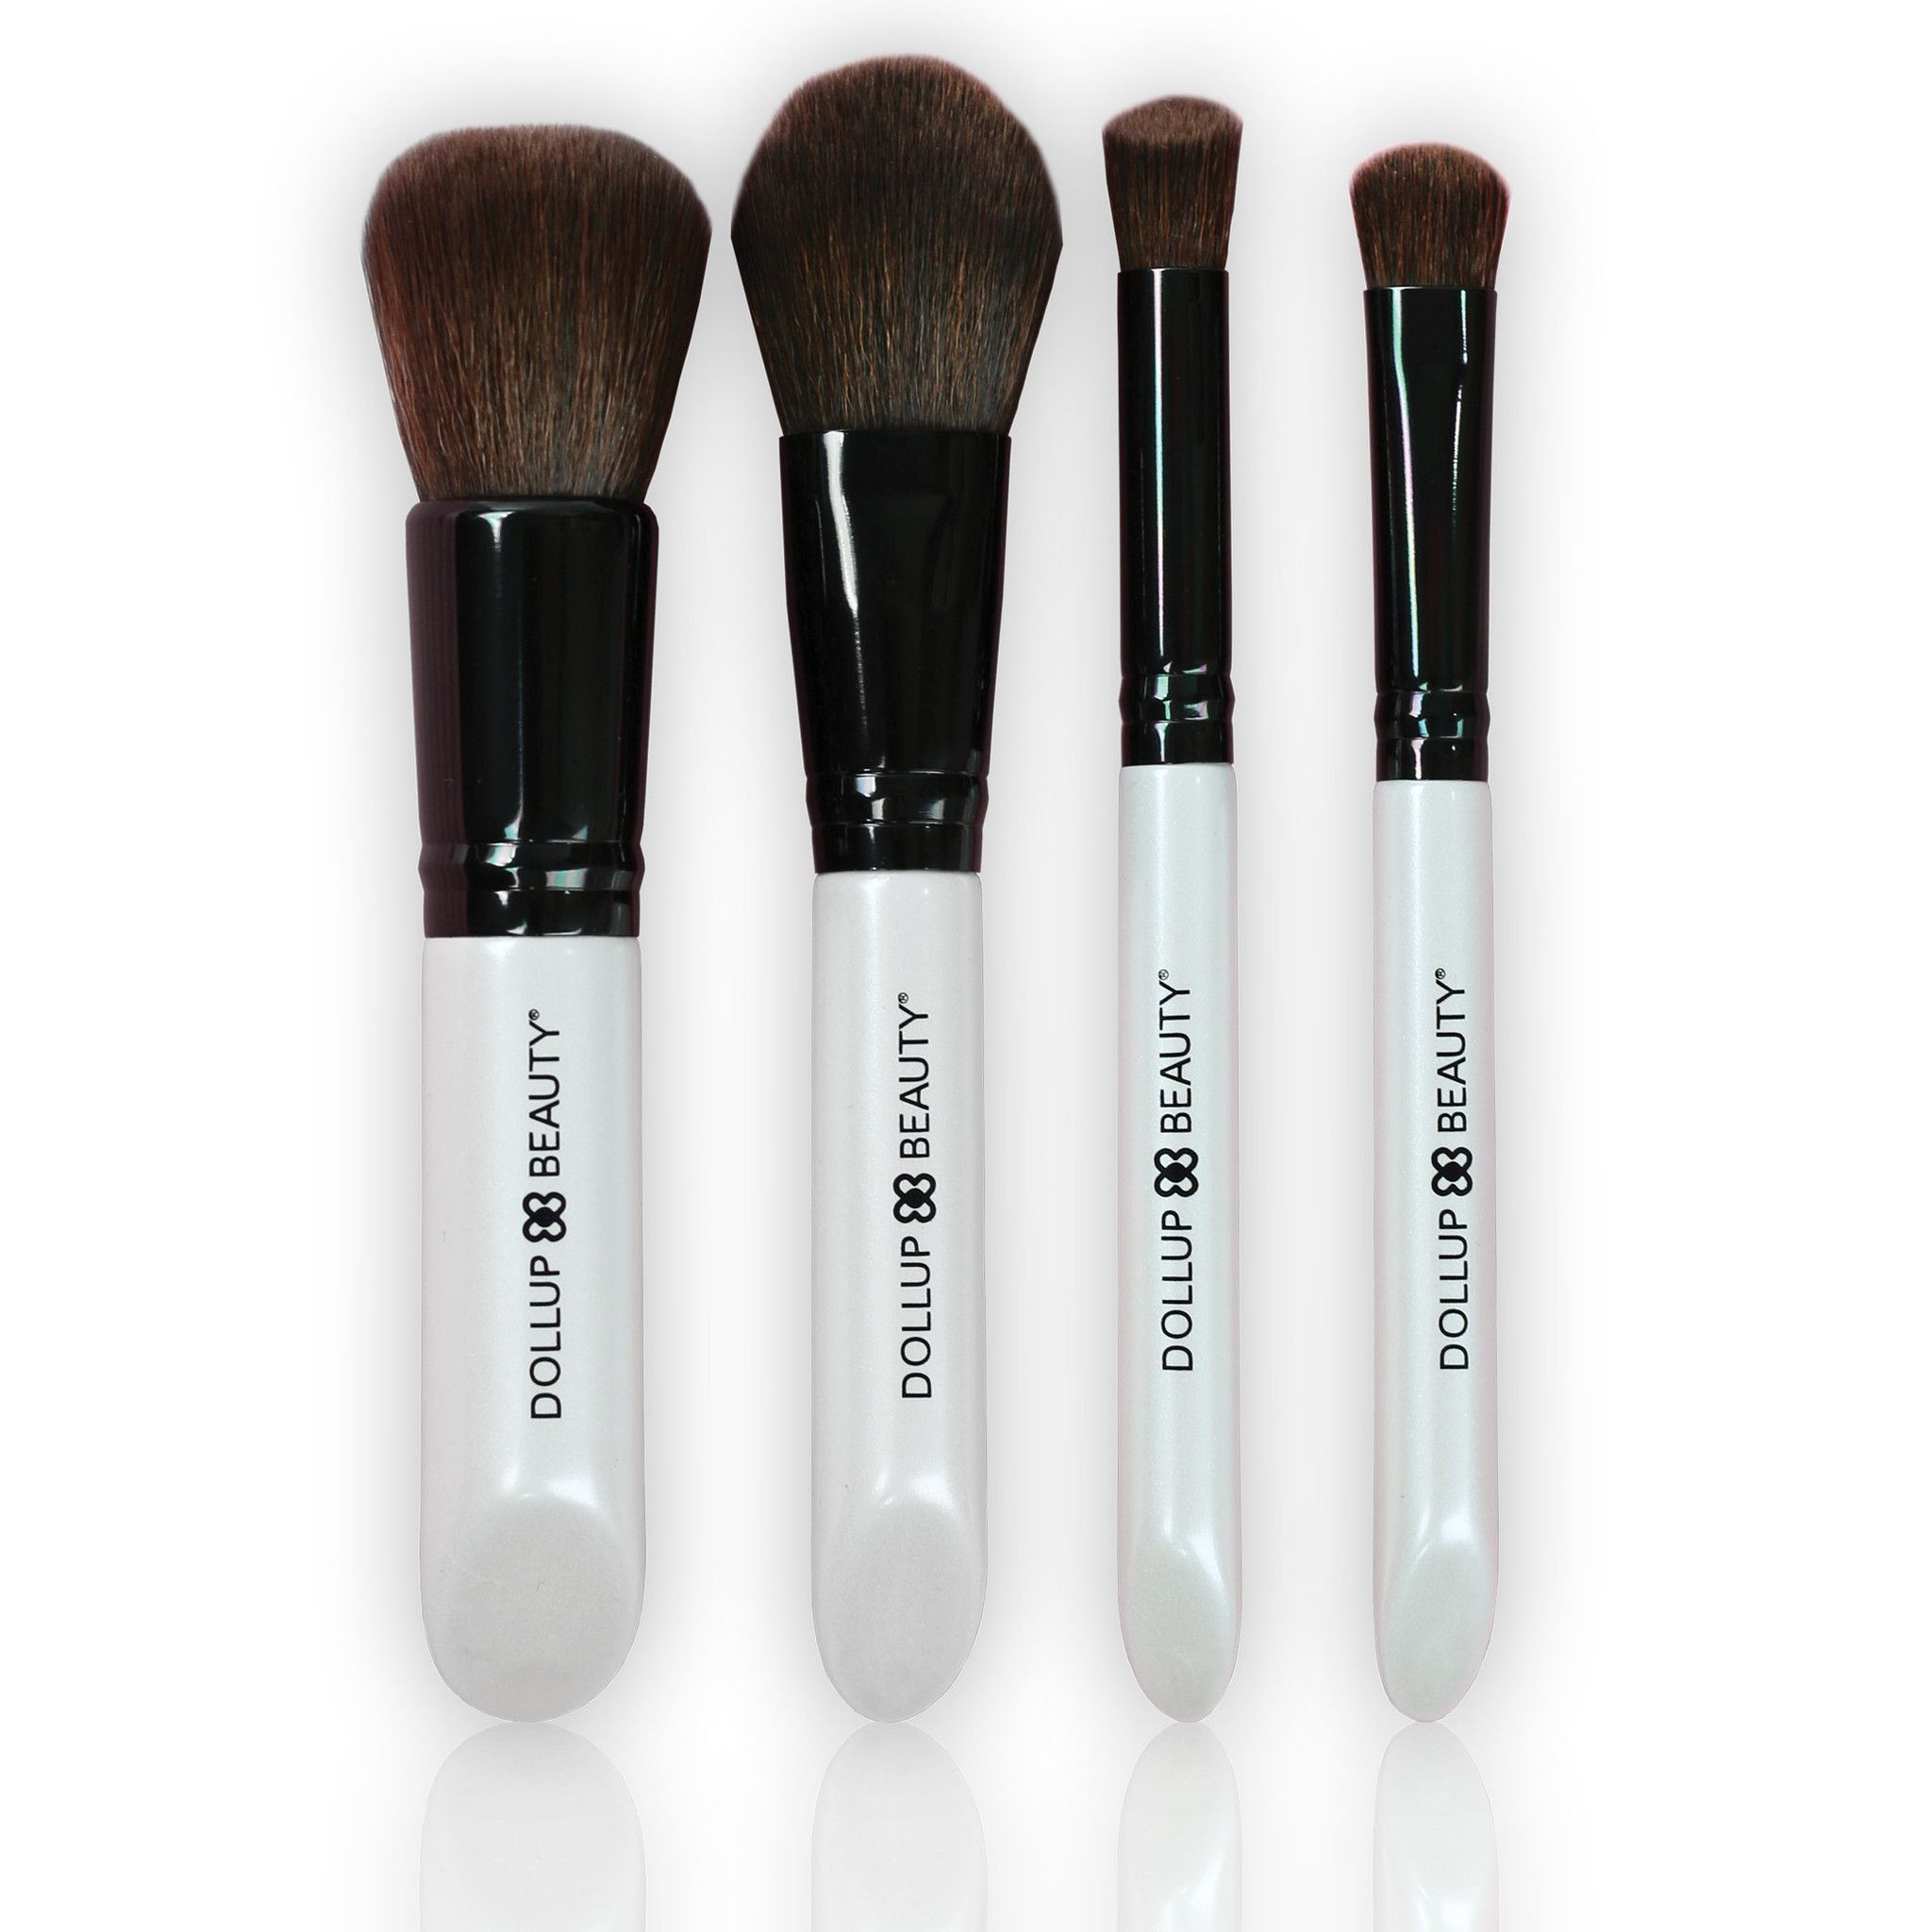 Bunny Soft™ Luxe NonShedding Makeup Brushes Eyeshadow